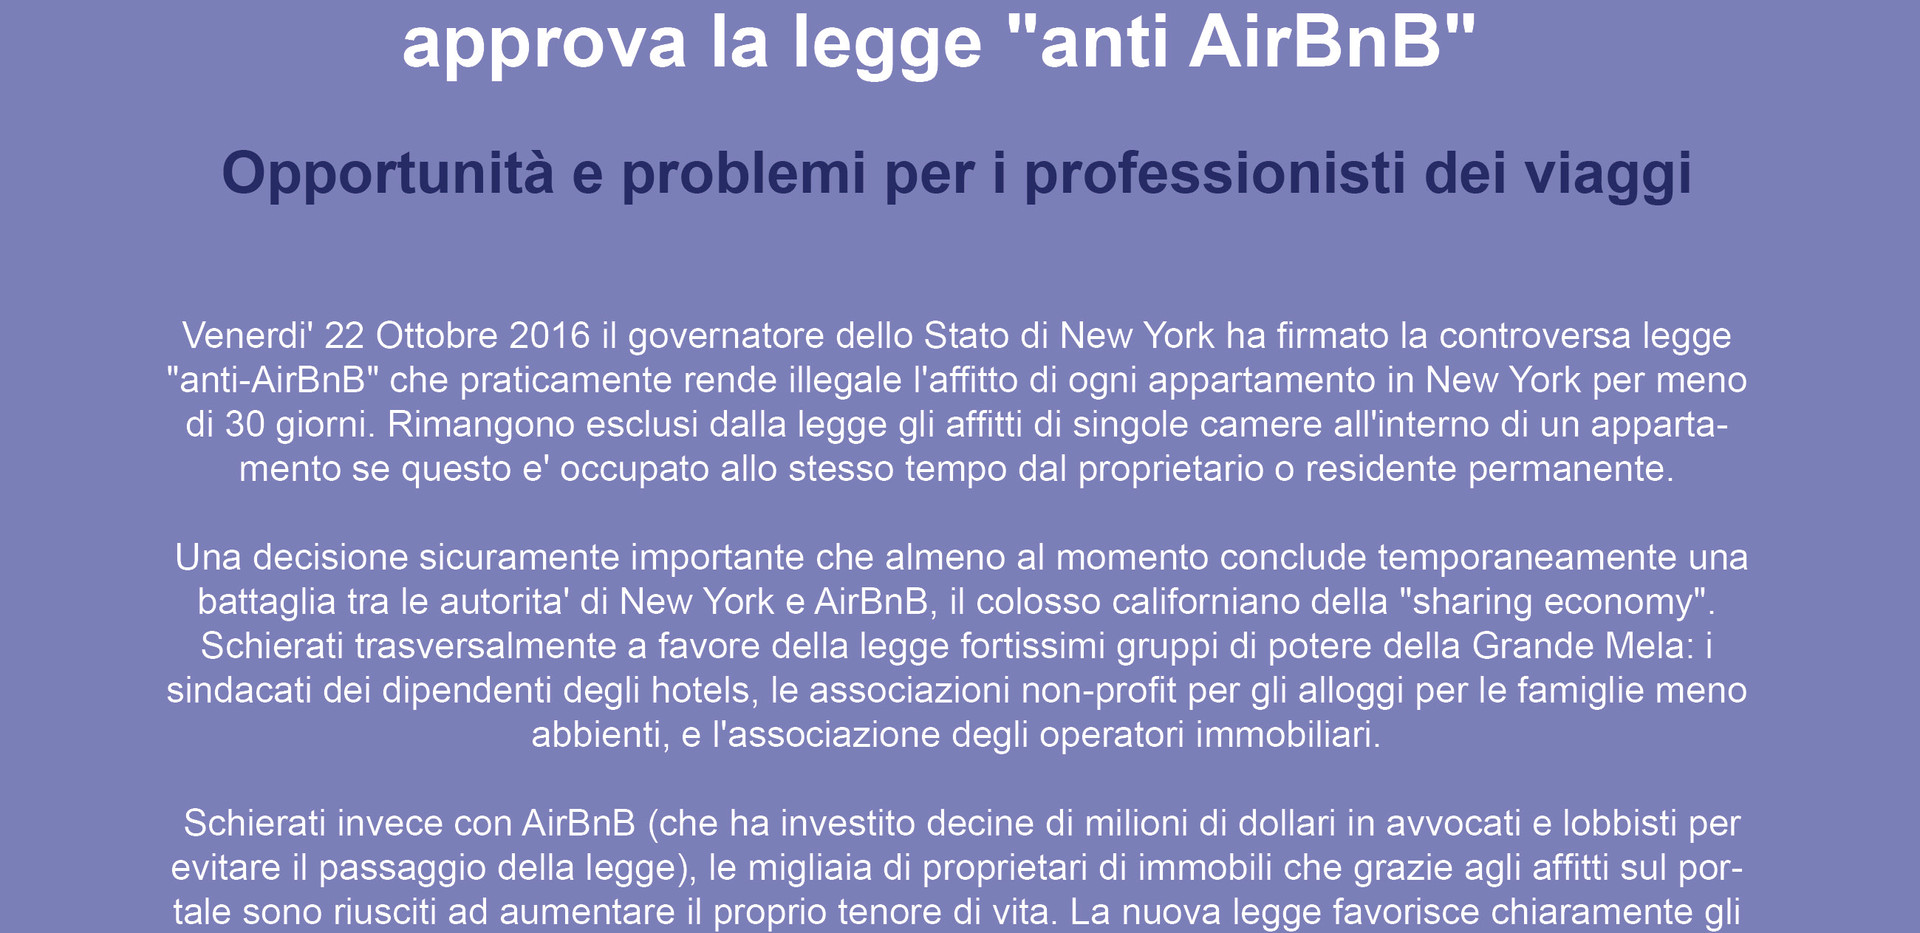 New York approva la legge anti AirBnB.jp